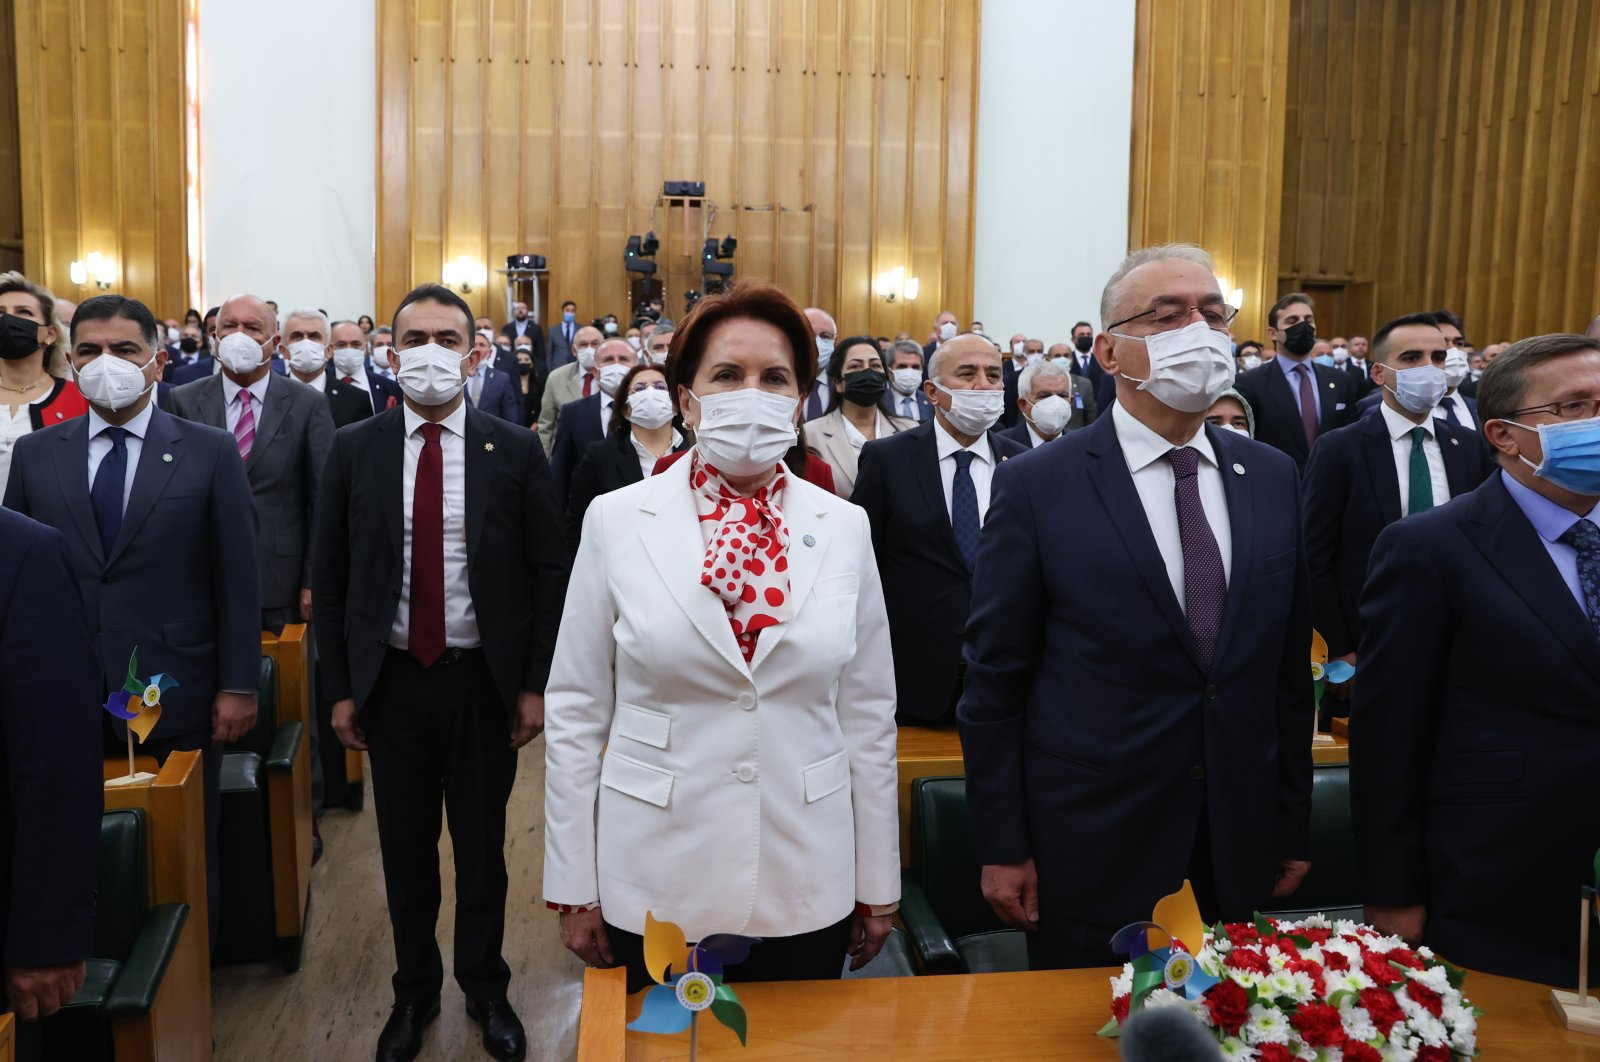 Good Party (IP) Chair Meral Akşener (C) and party officials stand during a ceremony at the Turkish Parliament, Ankara, Turkey, June 10, 2021. (AA File Photo)